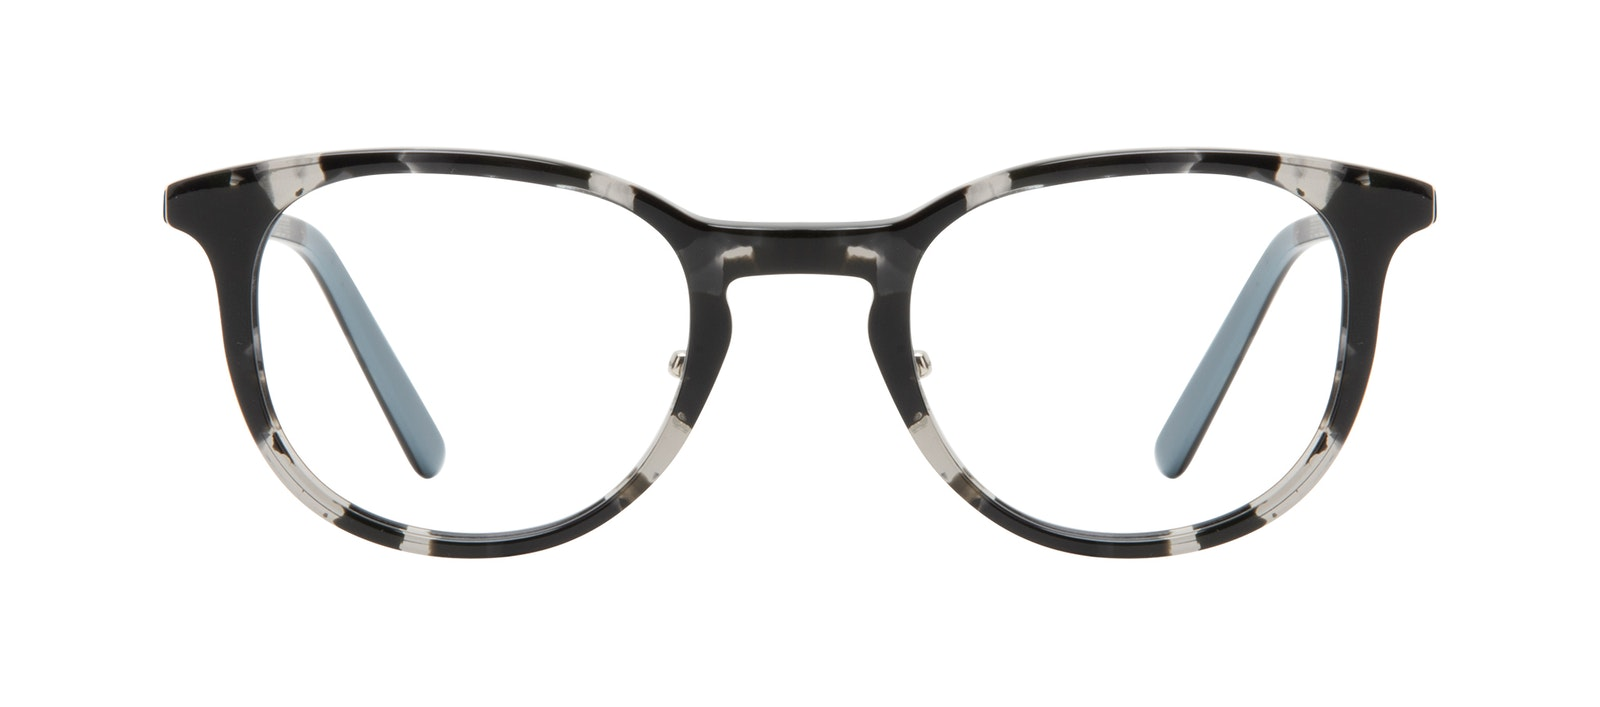 Affordable Fashion Glasses Round Eyeglasses Men Coast Stone Front